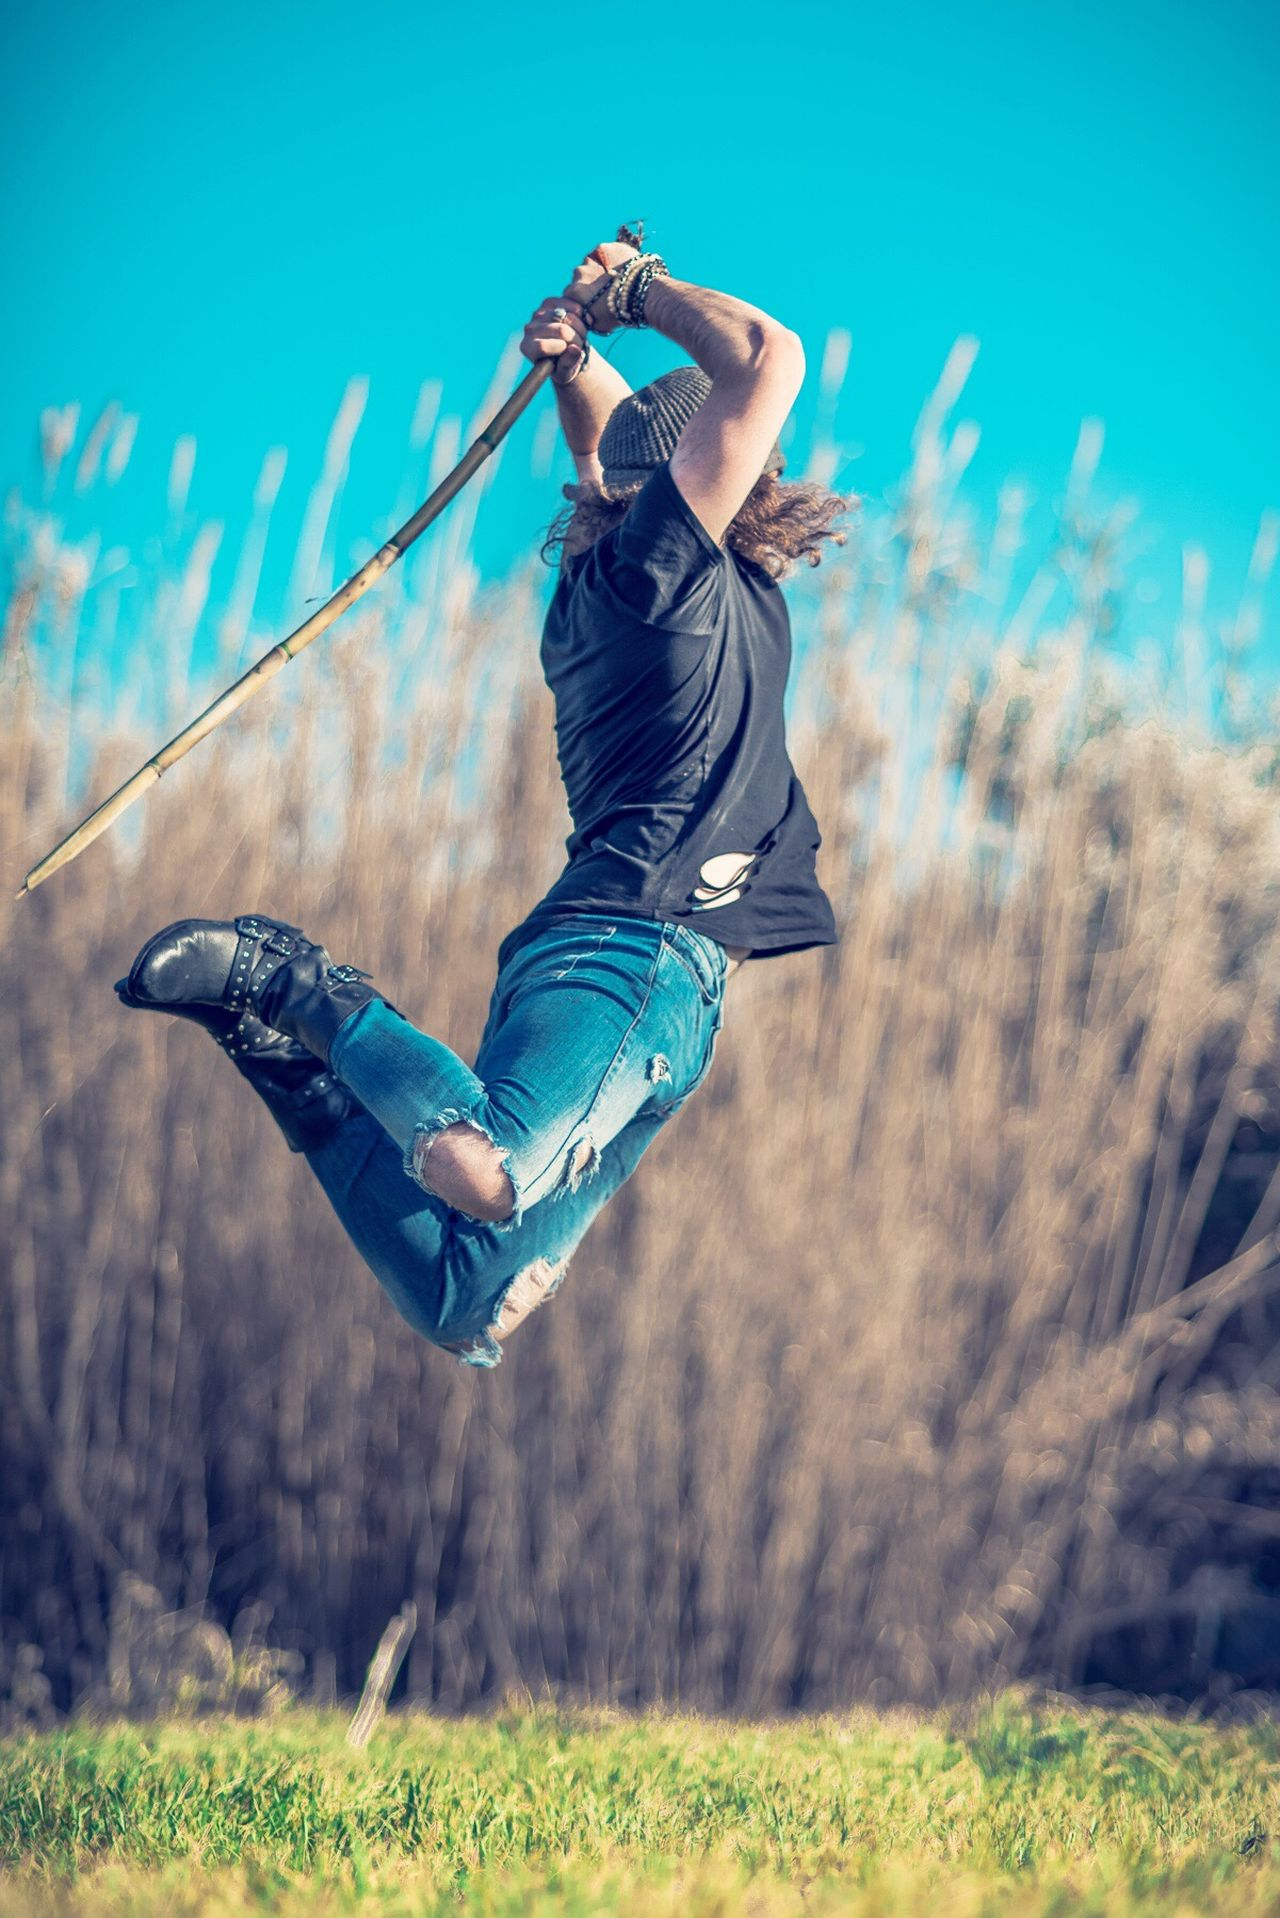 Jumping One Person Mid-air Motion Vitality Full Length Young Adult Childhood Stunt Outdoors People Sky Swing Day Adult